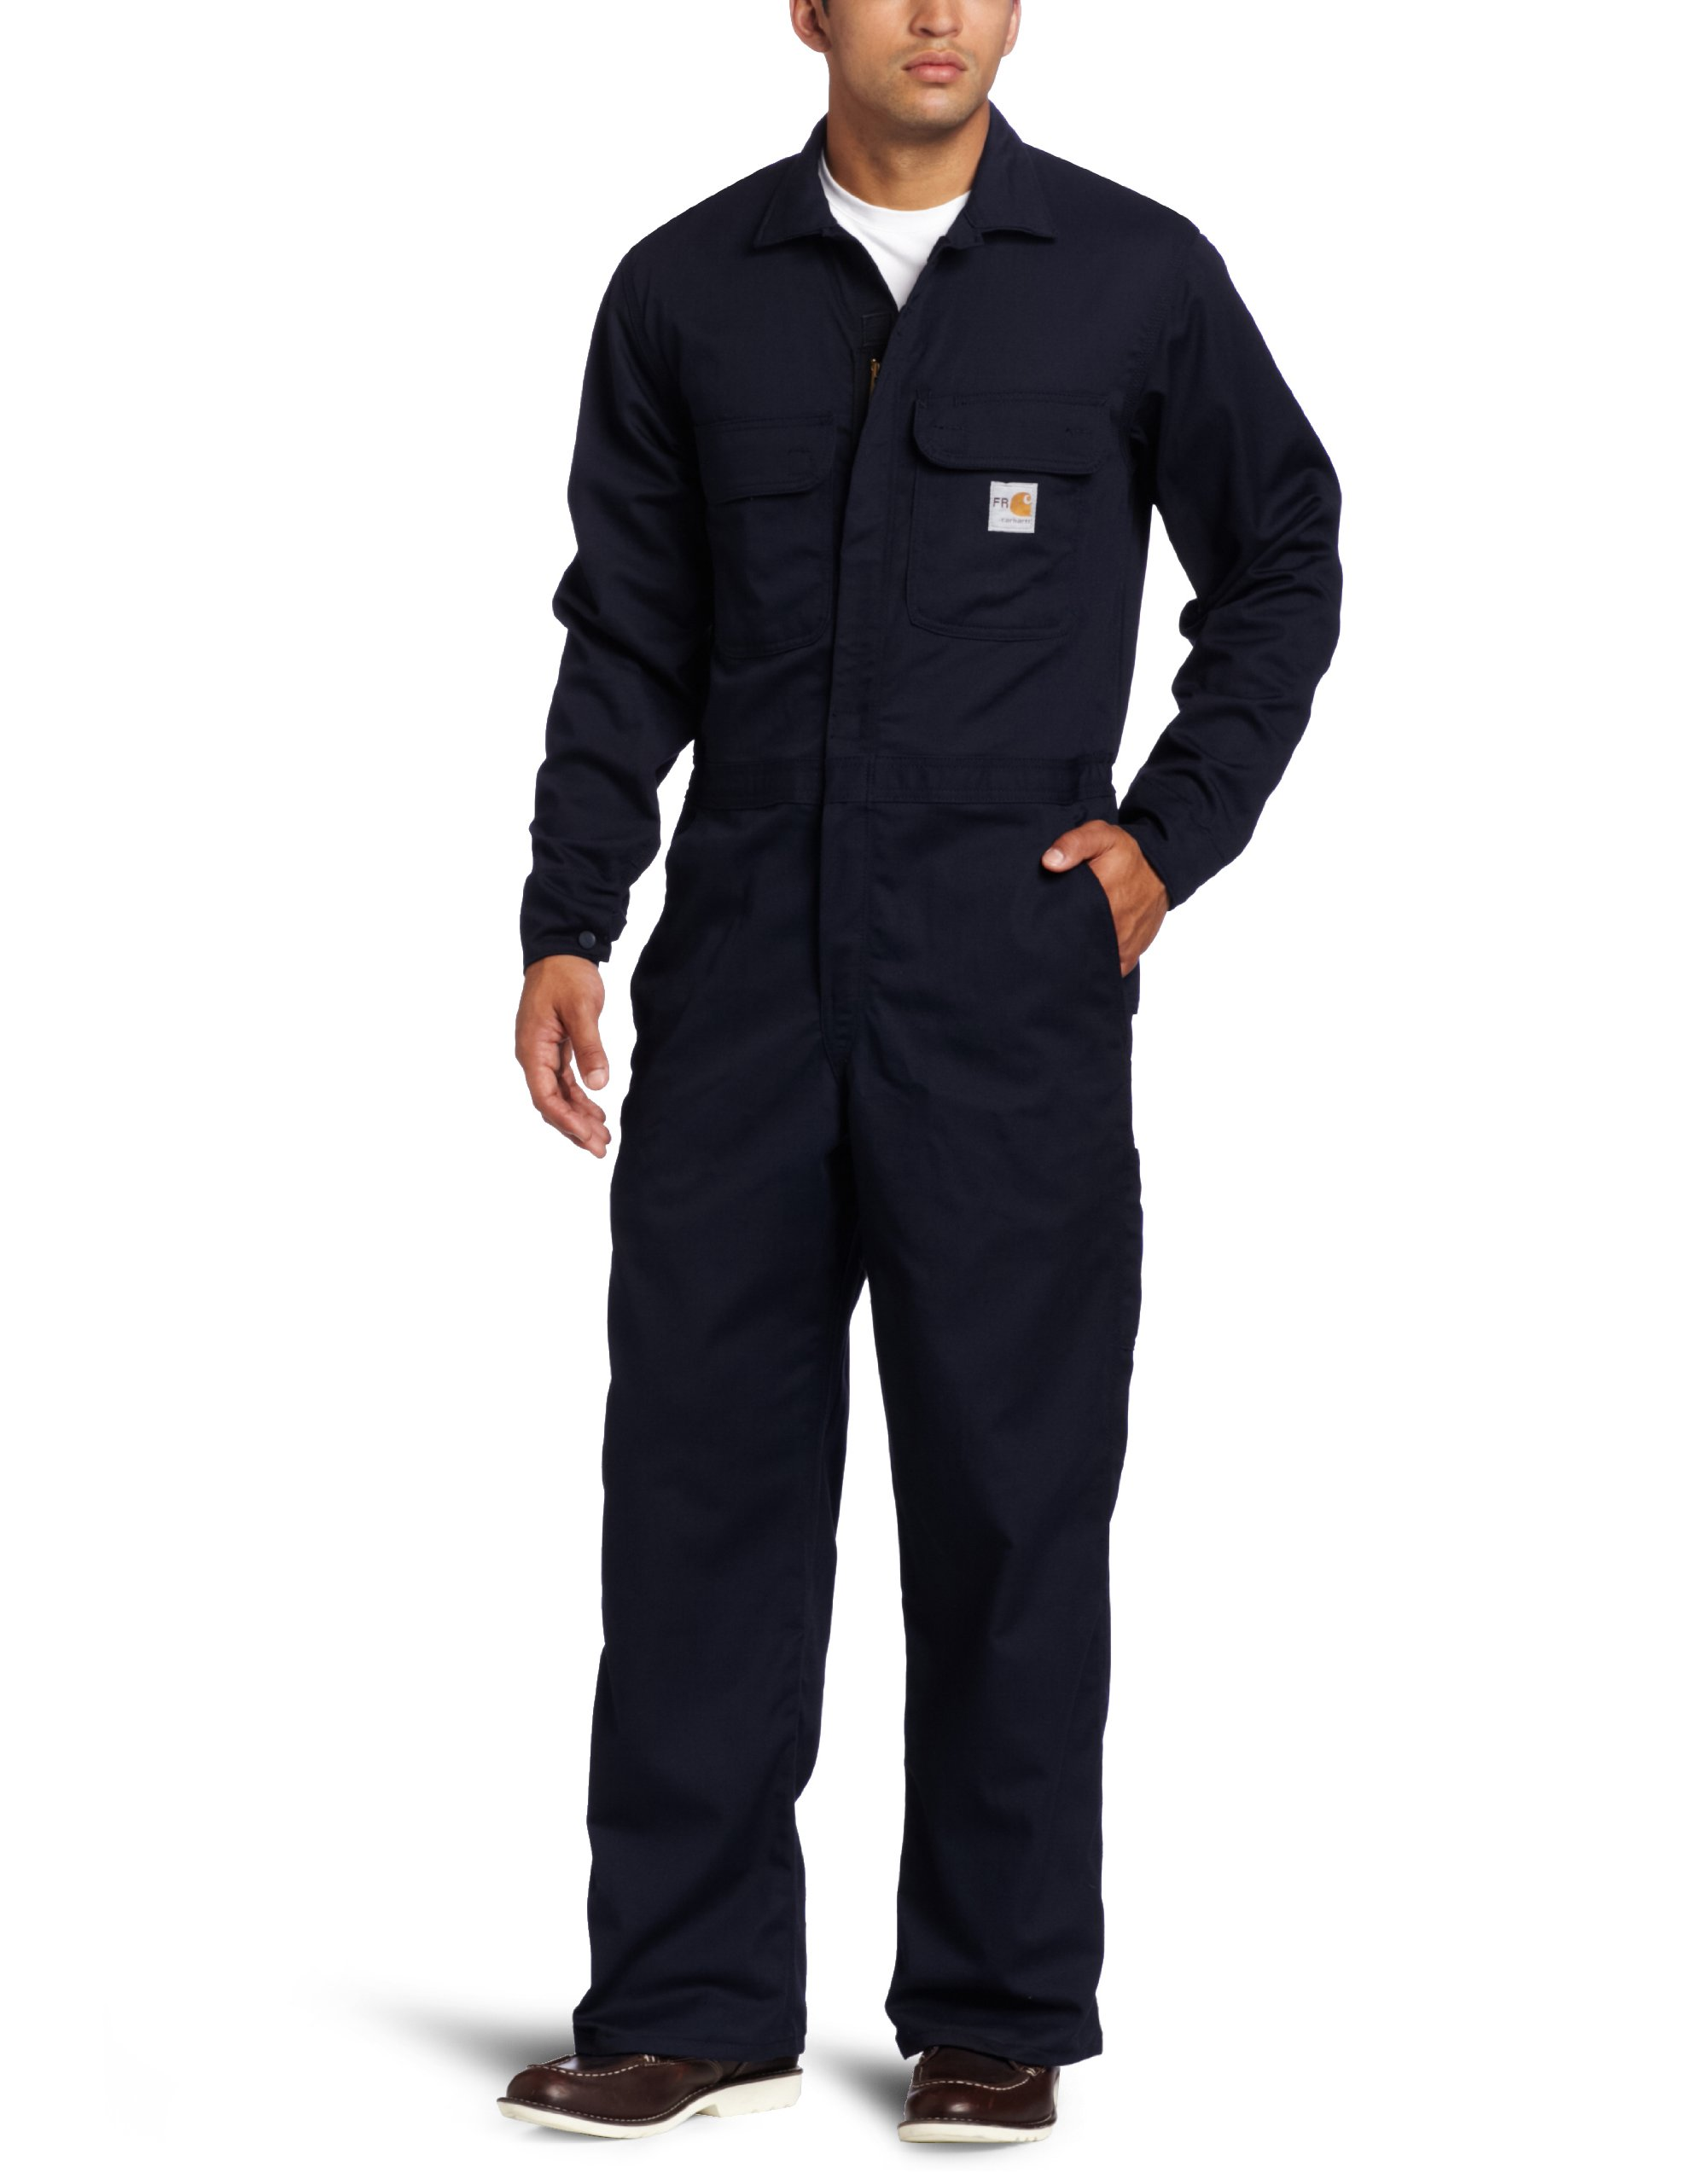 Carhartt Men's Big & Tall Flame Resistant Traditional Twill Coverall,Dark Navy,46 Tall